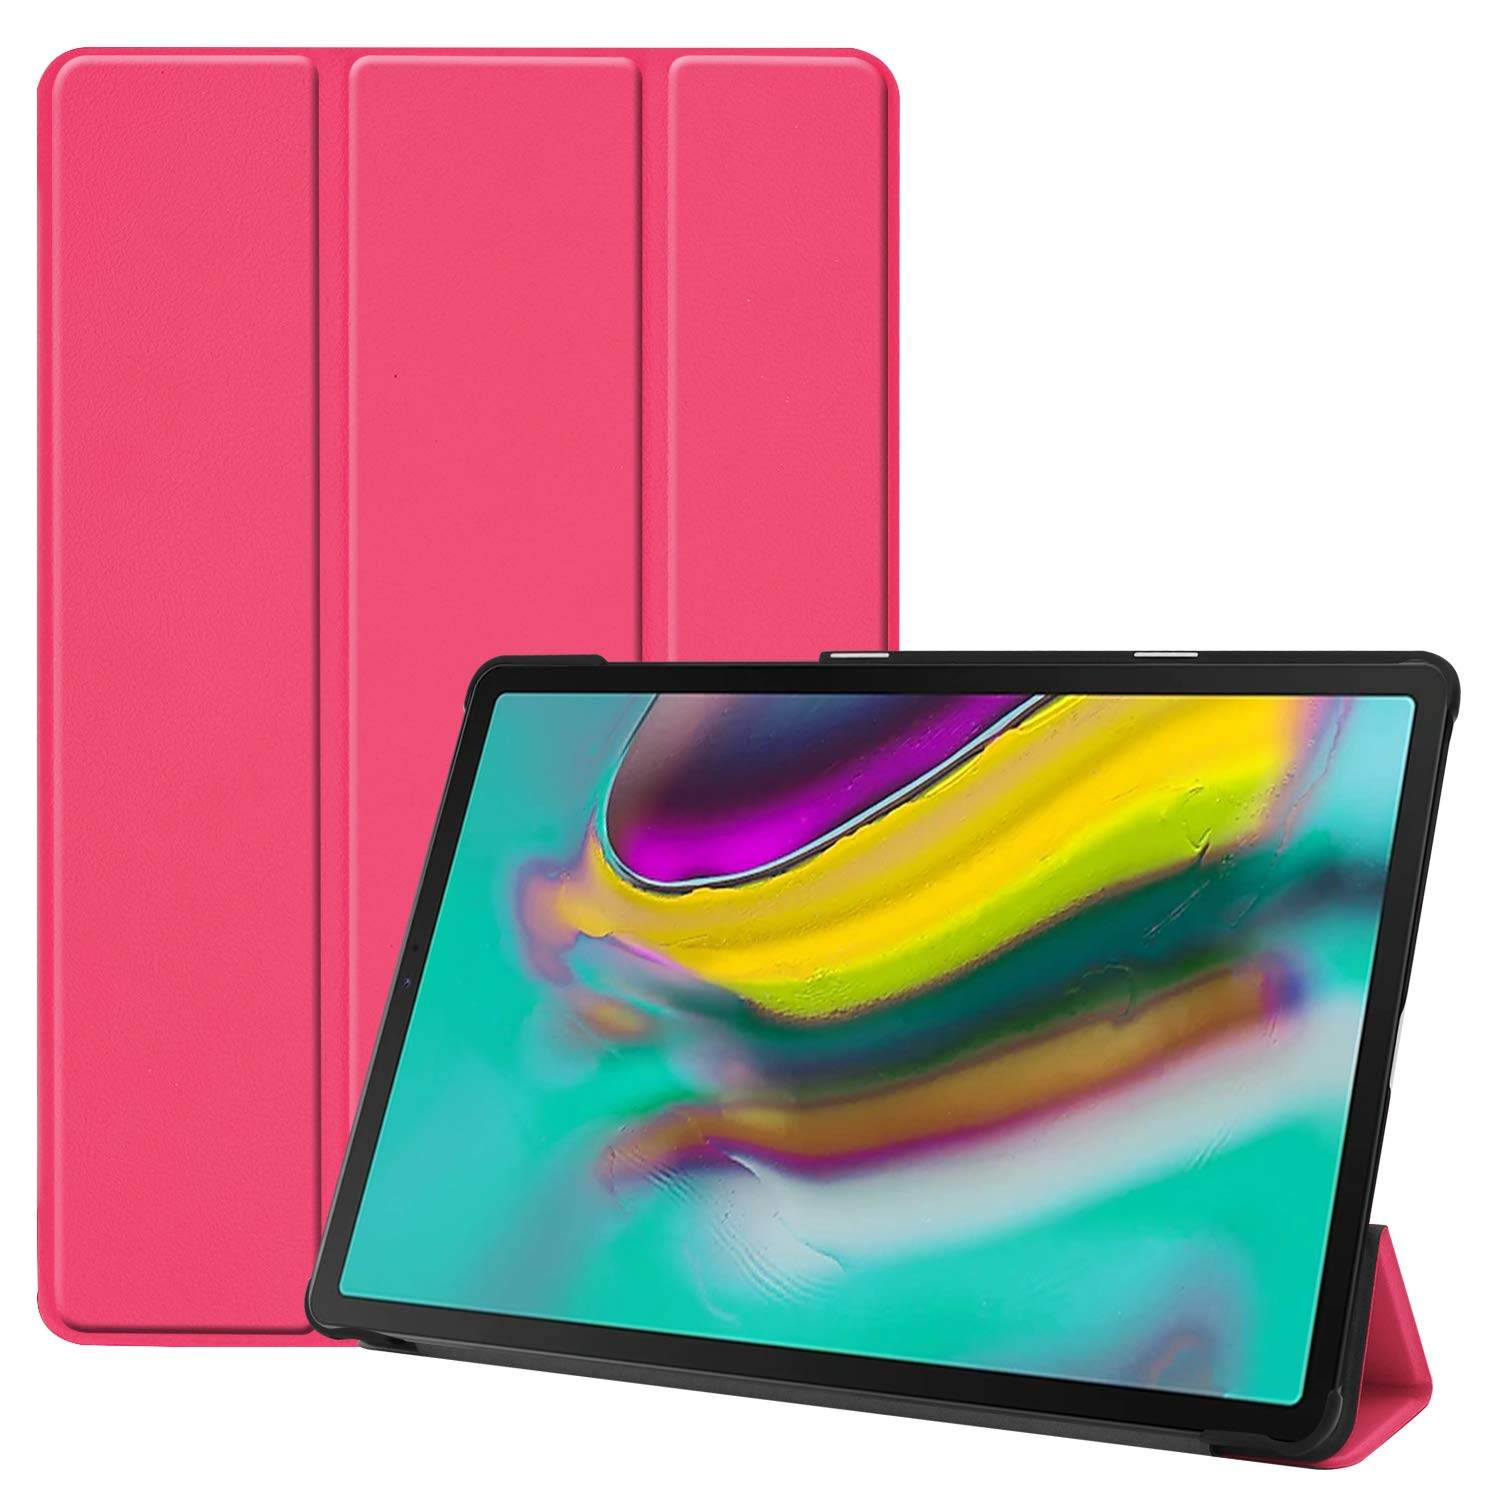 Fmway Smart Case Cover for Samsung Galaxy Tab S5e 10.5 T720 T725 2019 with Ultra Slim Light Translucent Frosted Back